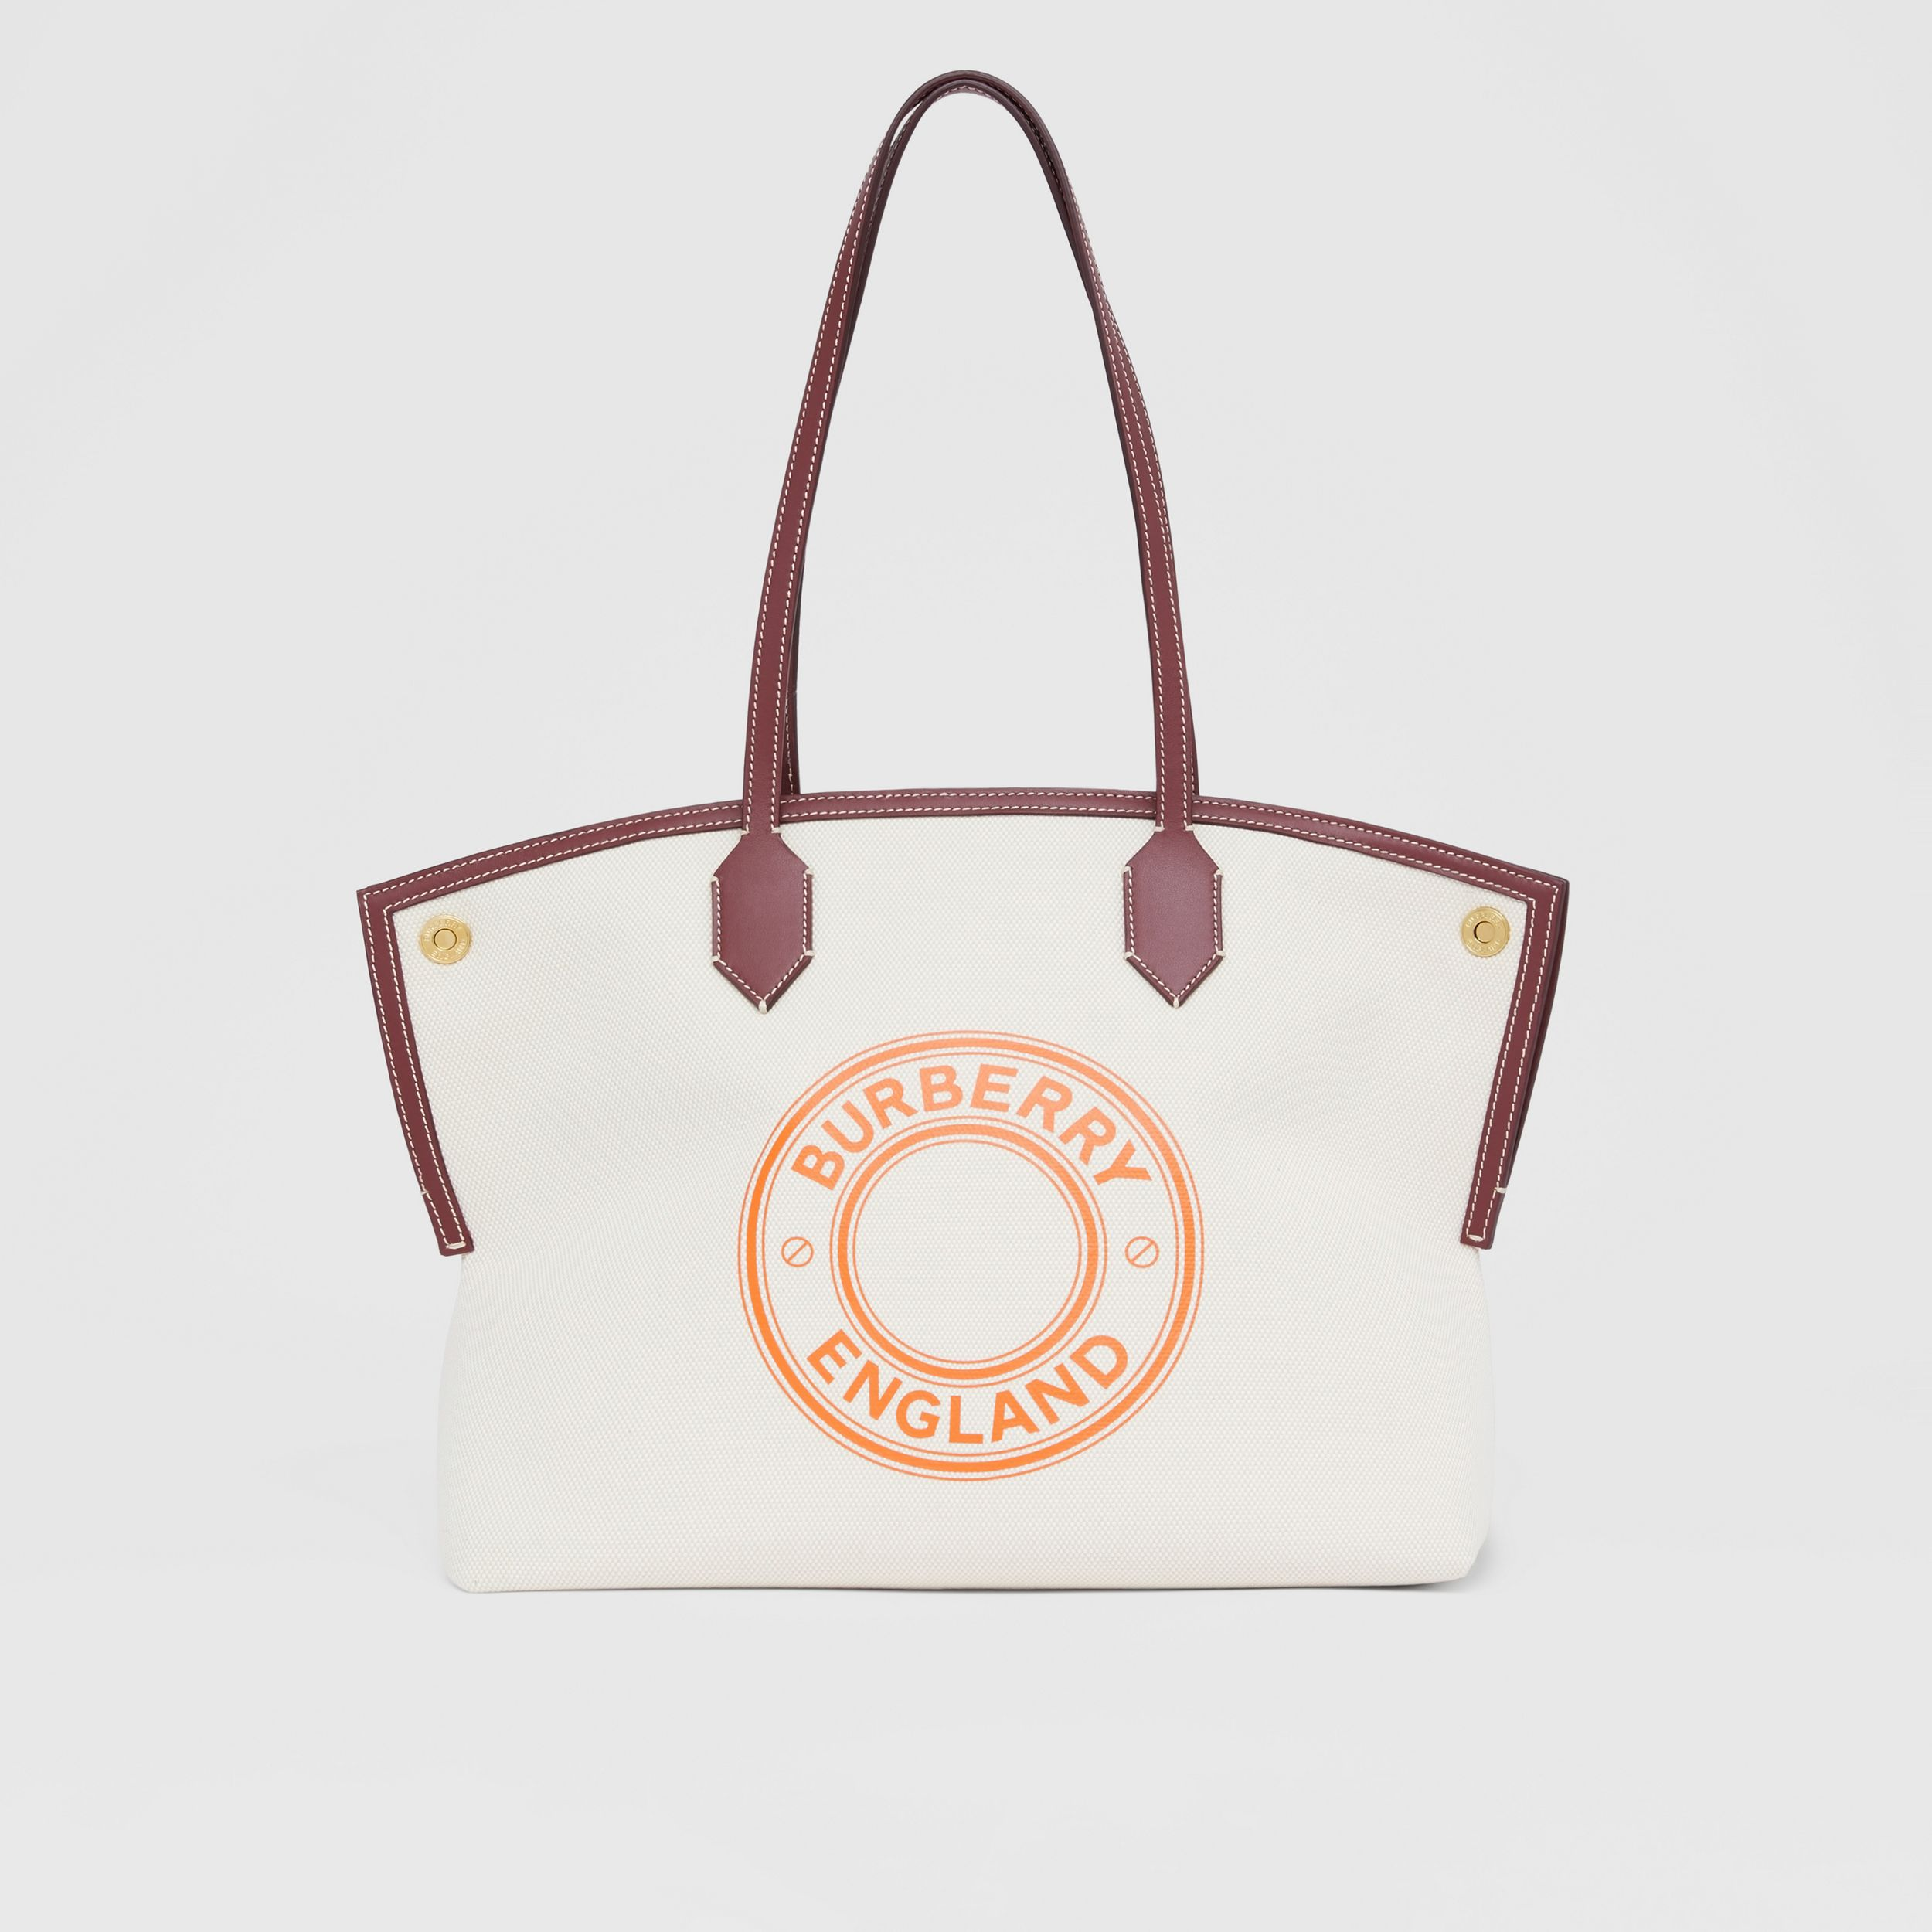 Medium Logo Graphic Cotton Canvas Society Tote in Natural/garnet/geranium - Women | Burberry Australia - 1